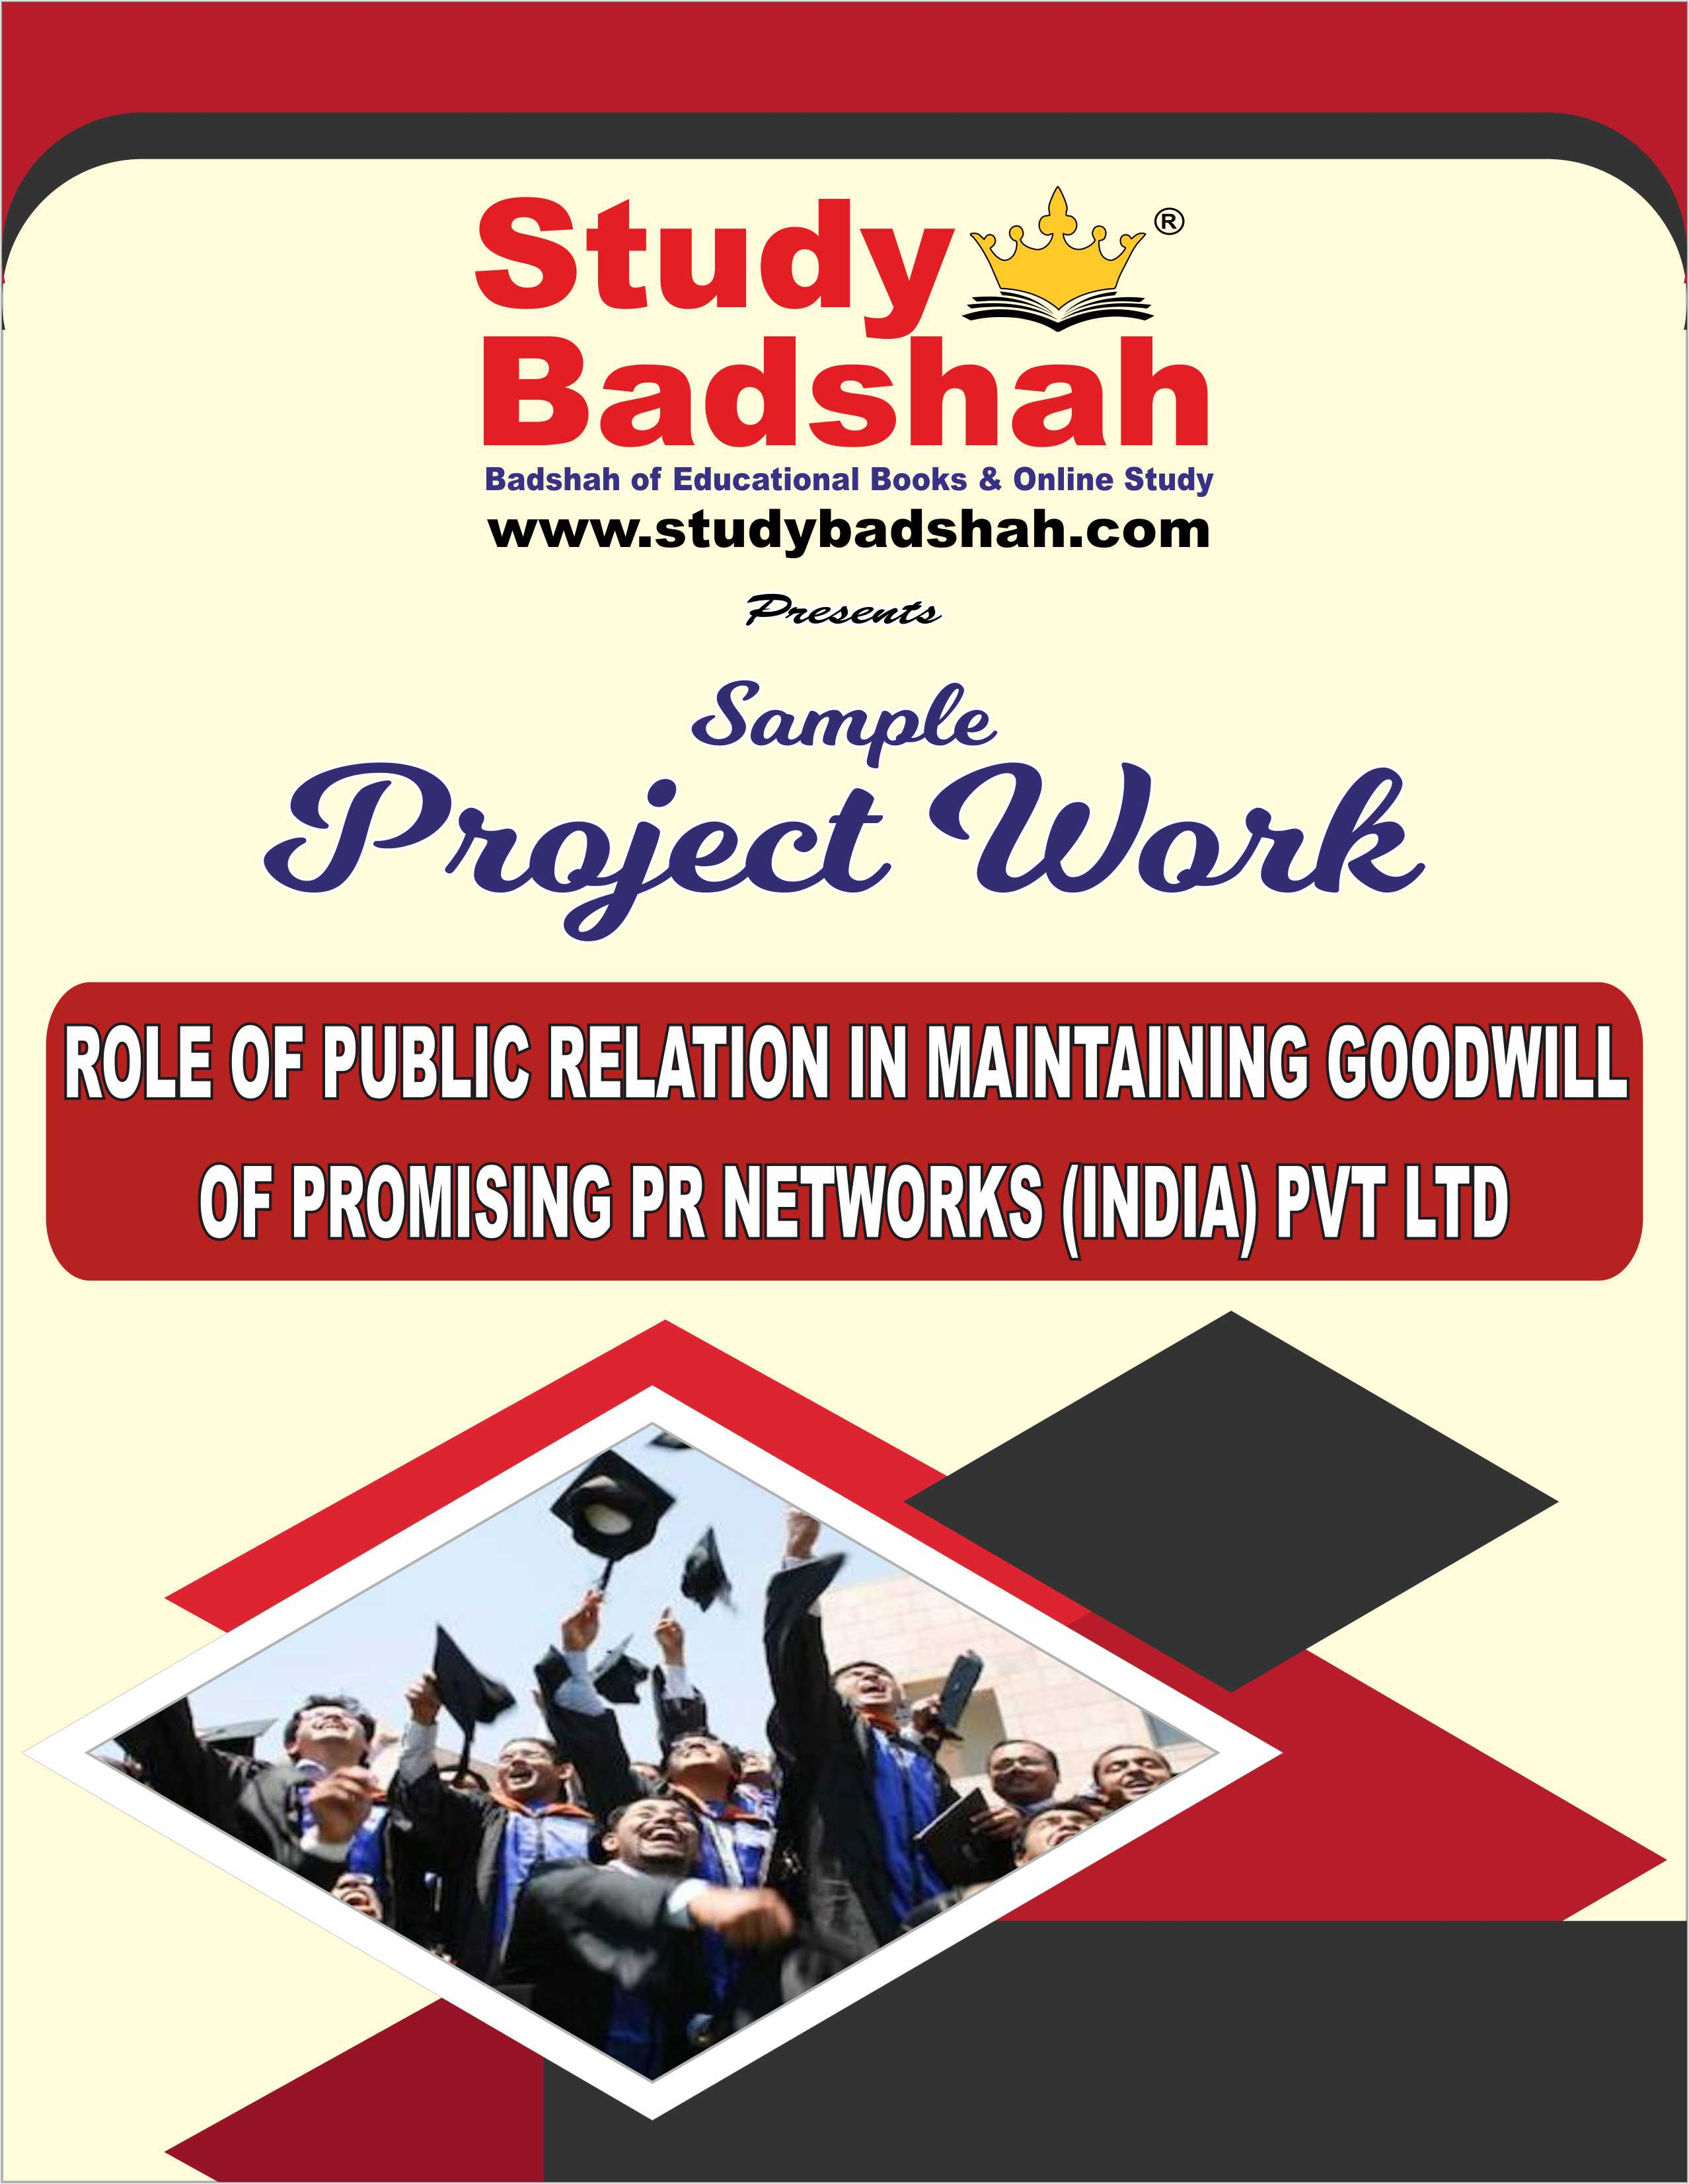 ROLE OF PUBLIC RELATION IN MAINTAINING GOODWILL OF PROMISING PR NETWORKS (INDIA) PVT LTD